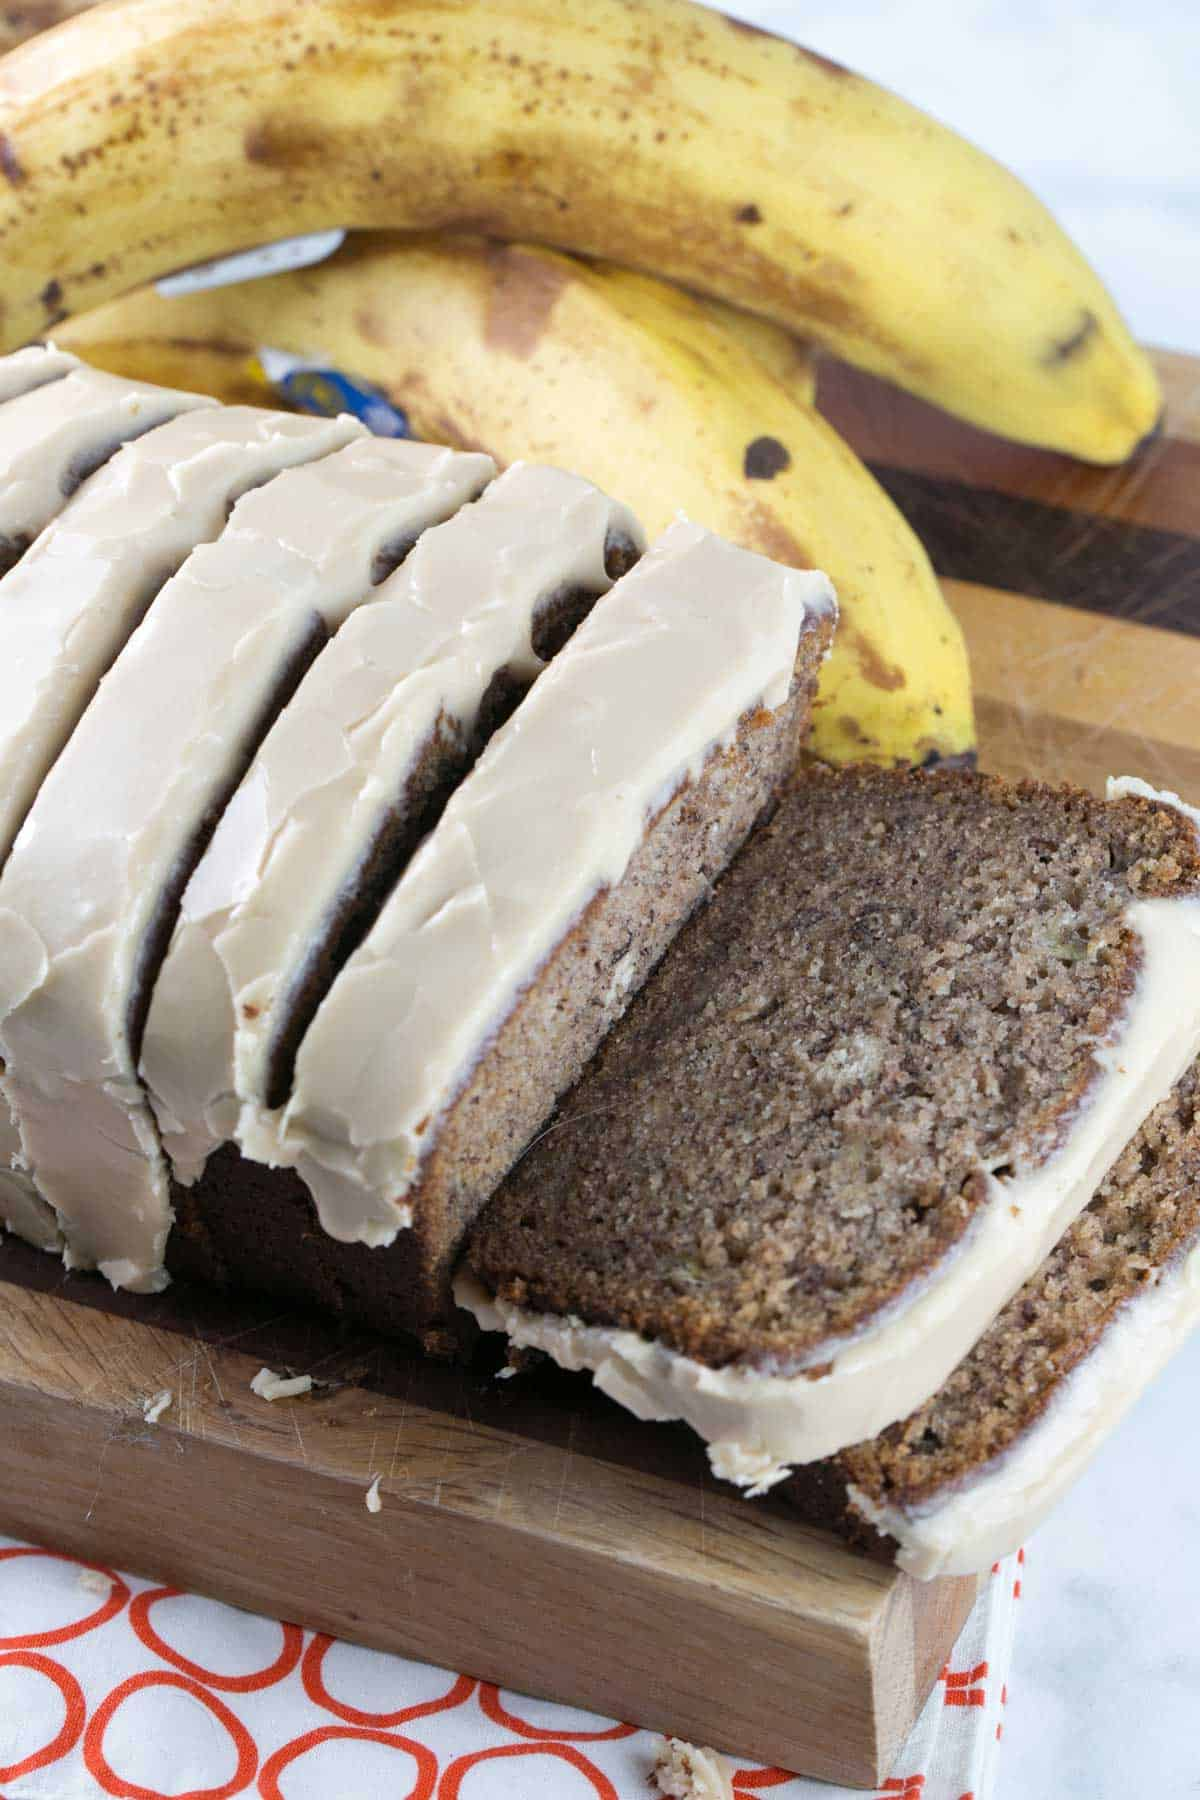 sliced maple glazed banana bread on a cutting board next to brown spotted bananas